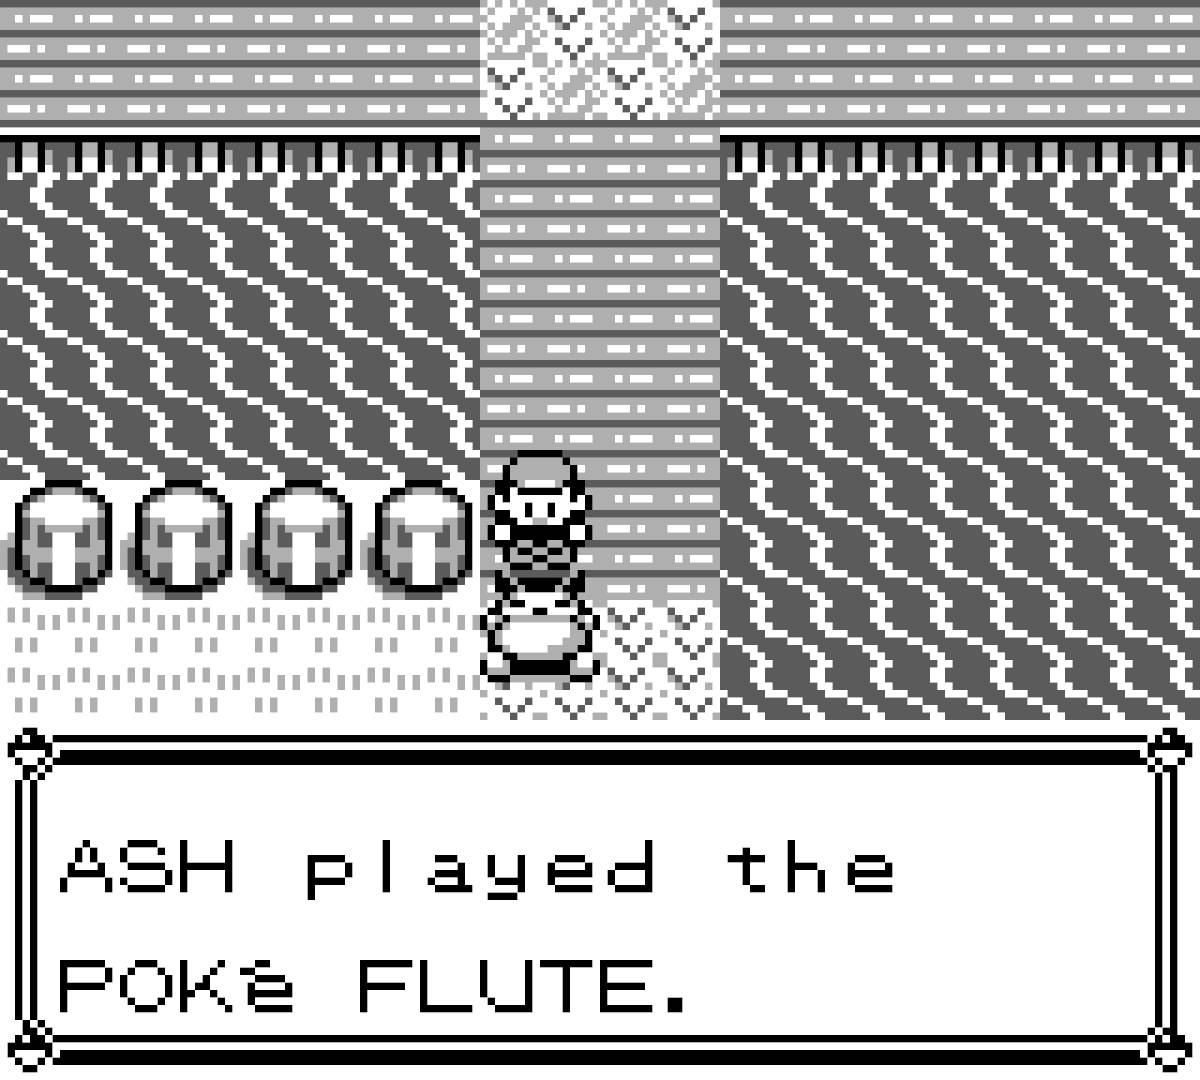 Image from Pokemon Blue (Public Domain)